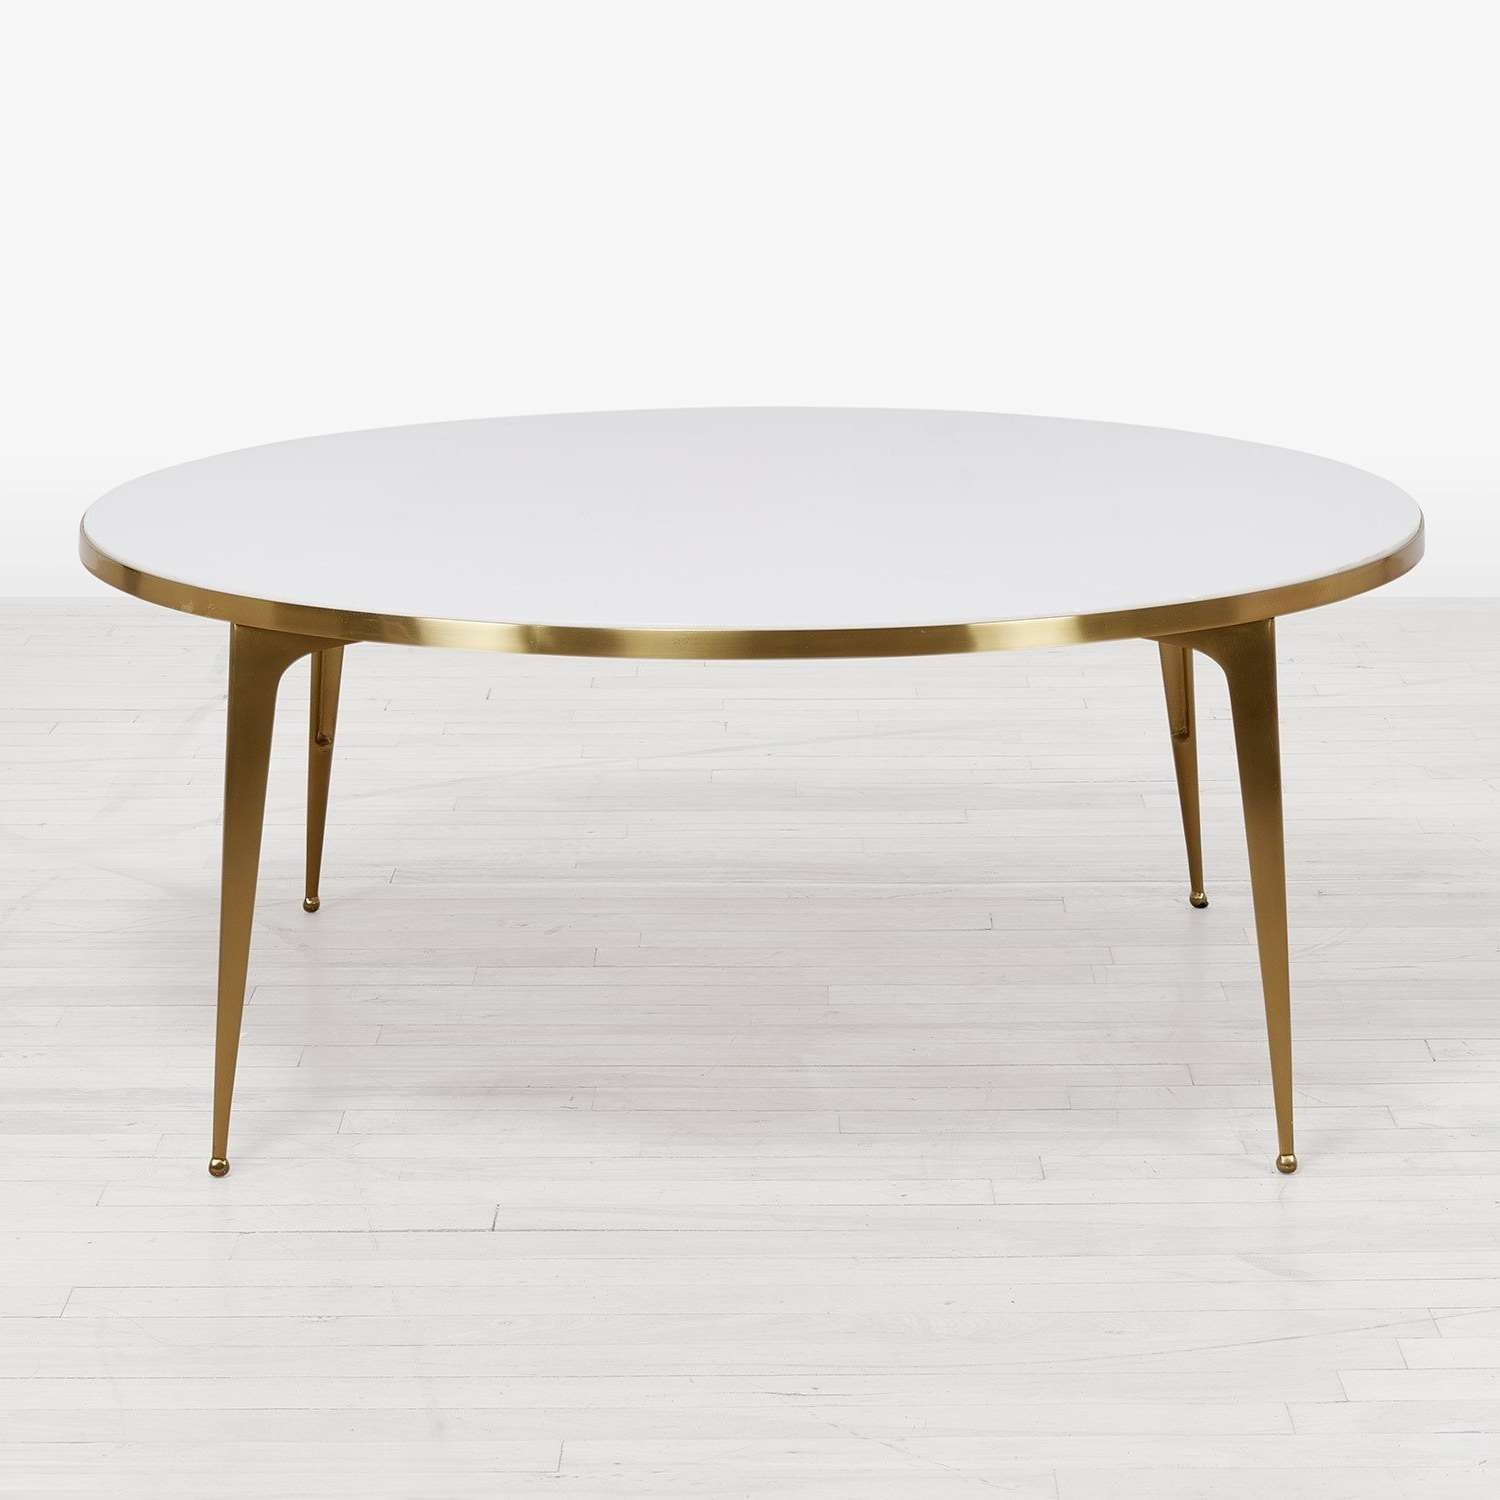 Coffee Tables : Fold Up Coffee Table Round Marble Top Low Square In Best And Newest White Oval Coffee Tables (View 6 of 20)